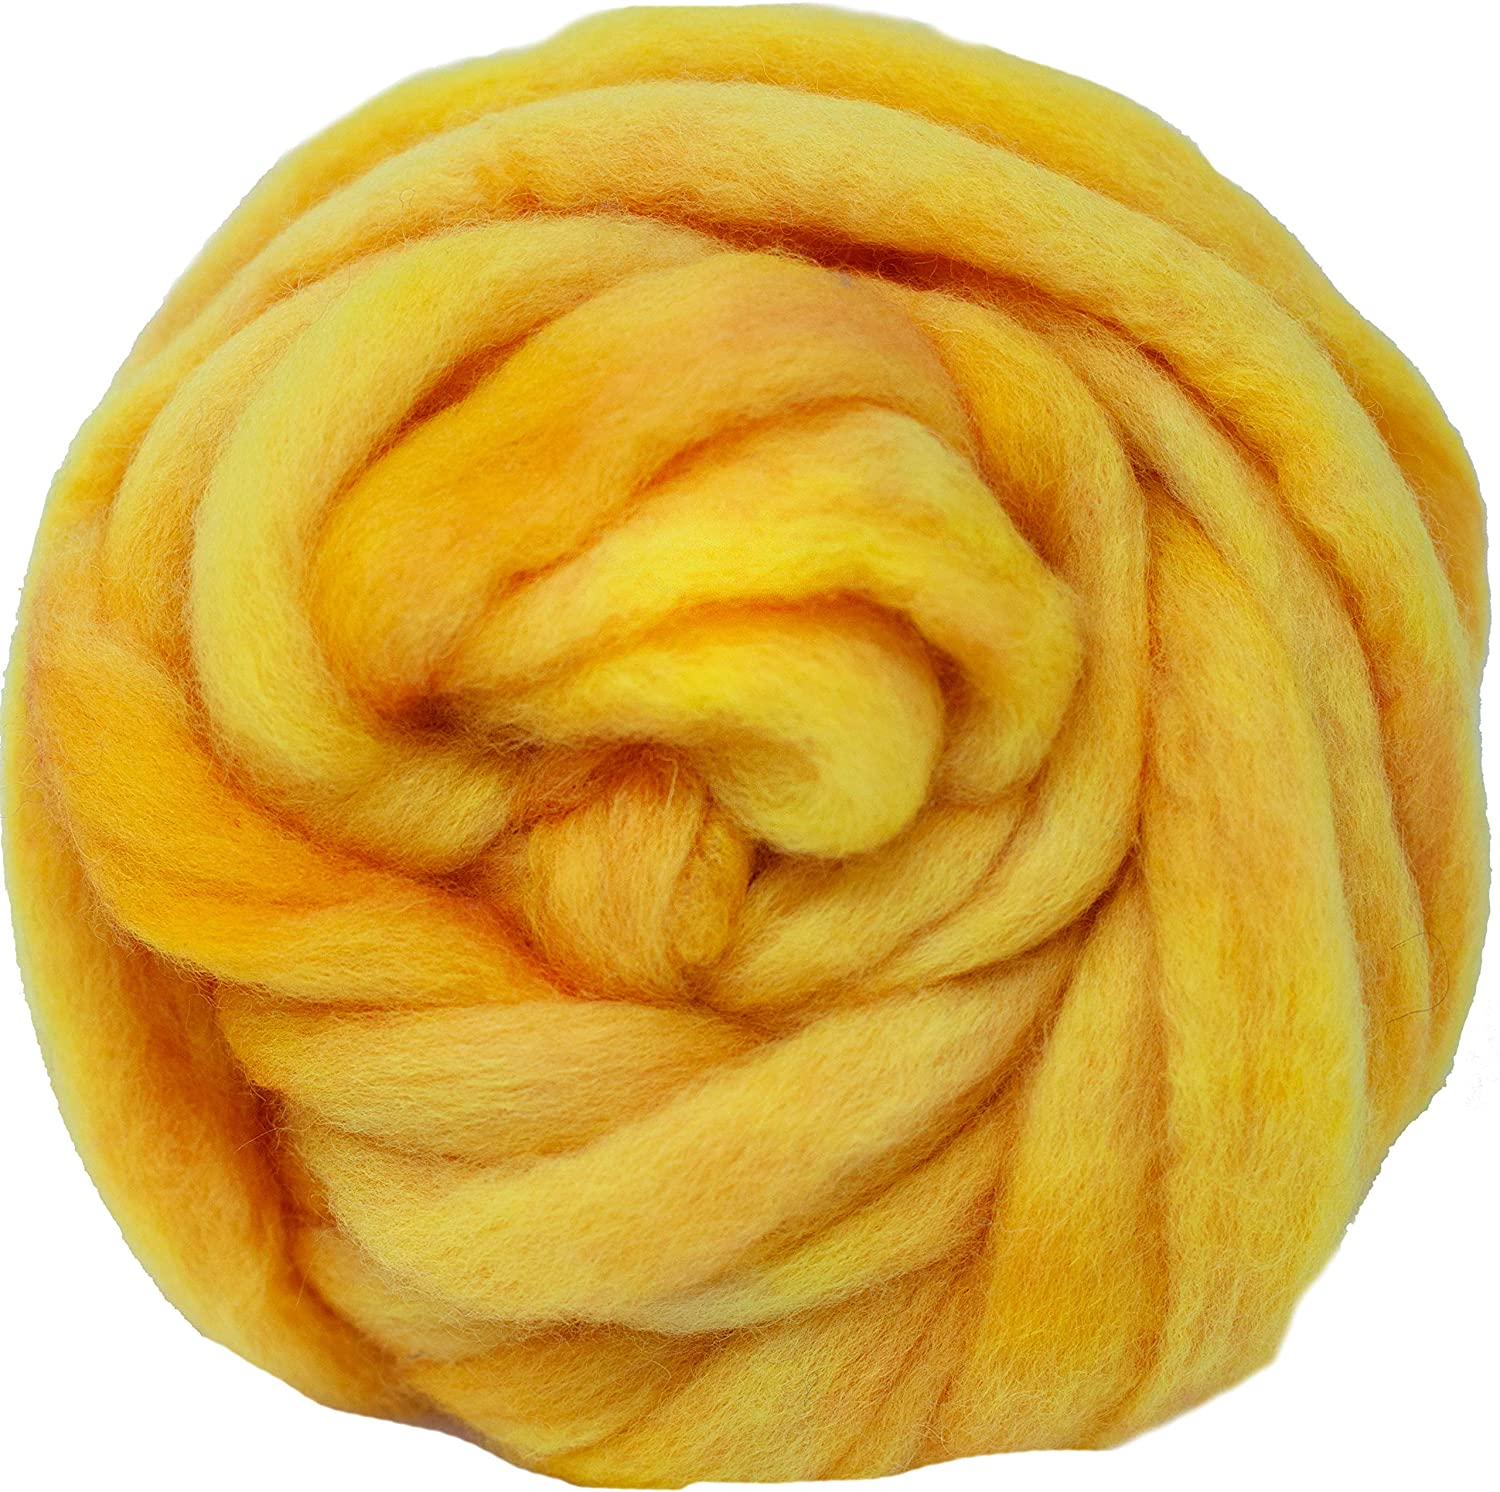 Old Gold Artisanal Craft Fiber ideal for Felting Super Soft BFL Combed Top Pre-Drafted for Easy Hand Spinning Wall Hangings and Embellishments 4 Ounce Weaving Wool Roving Hand Dyed